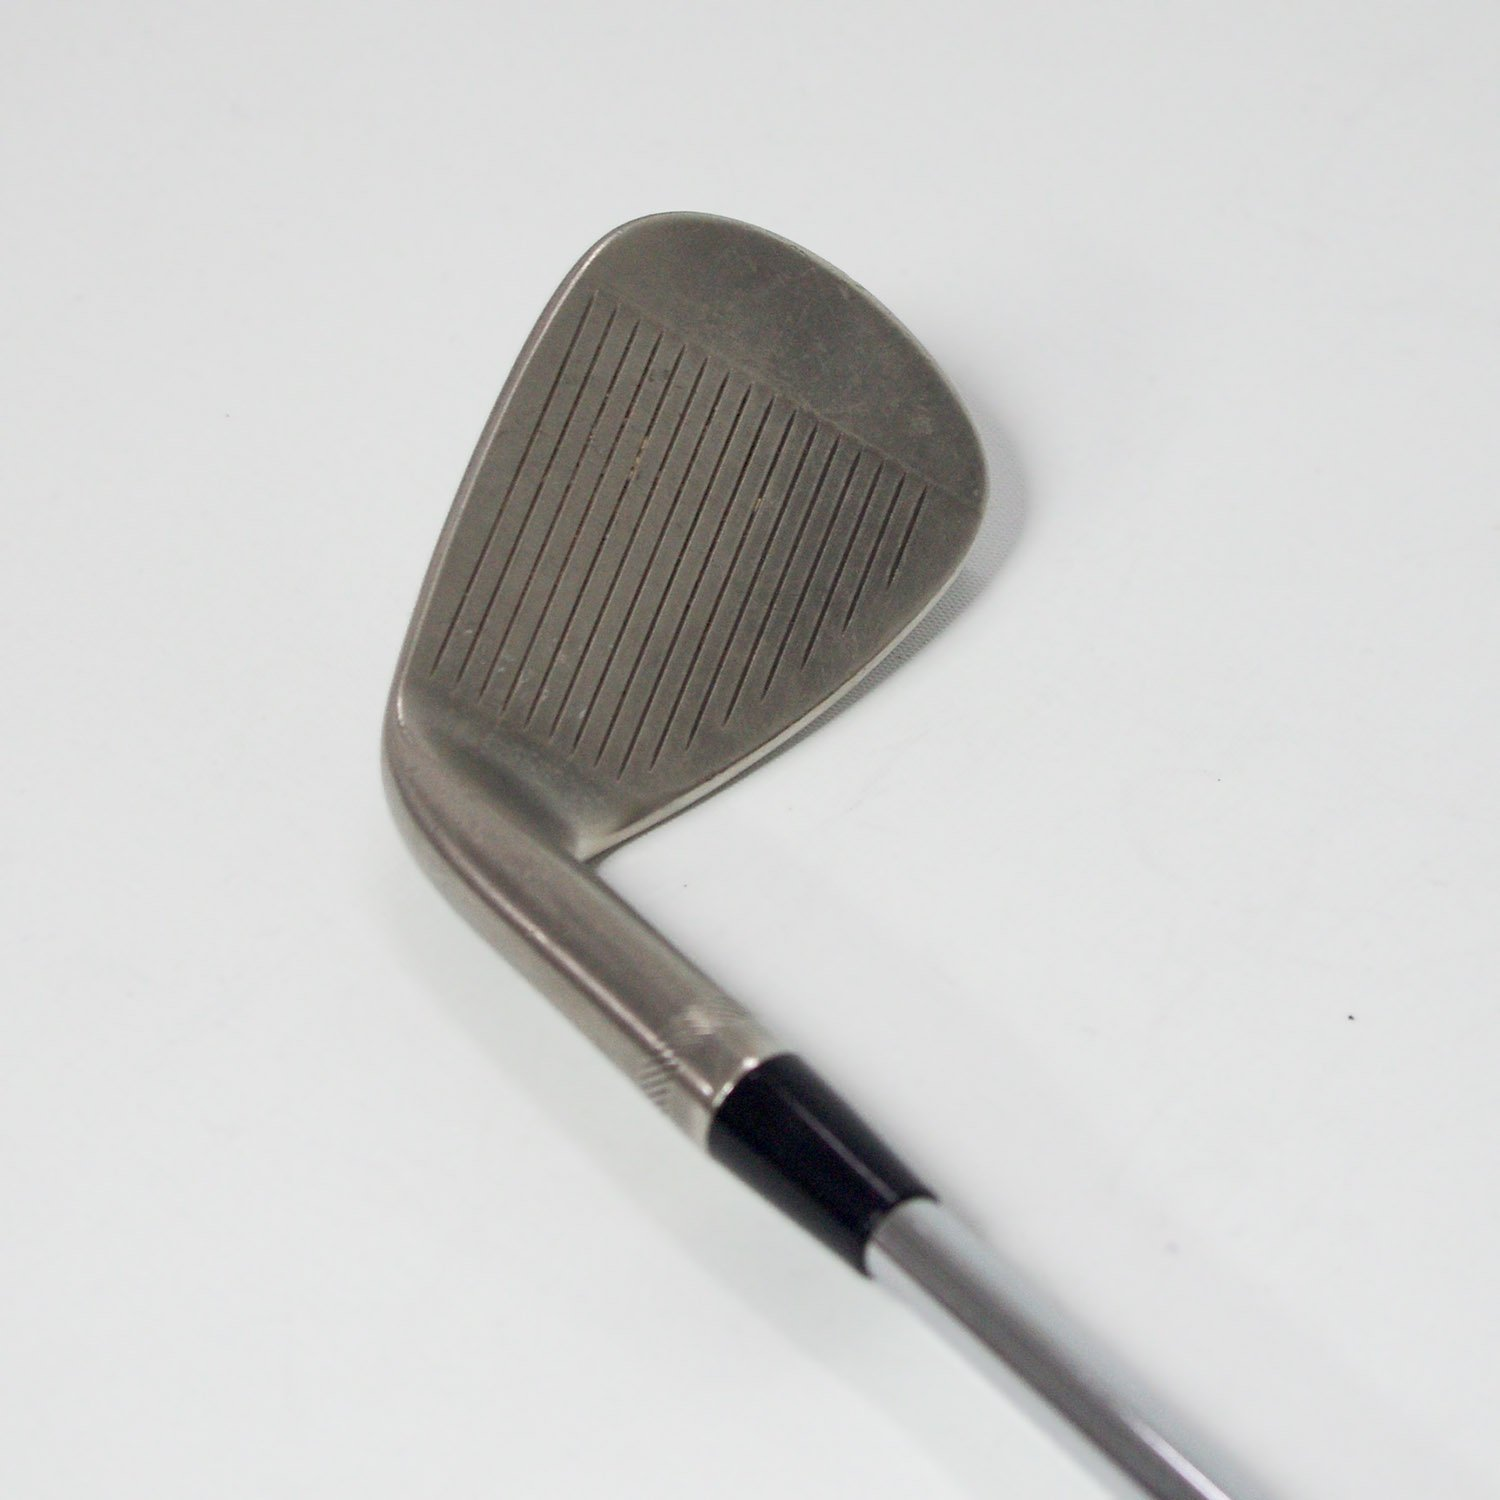 Gậy golf Titleist Wedge cũ SM 6F 5012 PCW-TL44